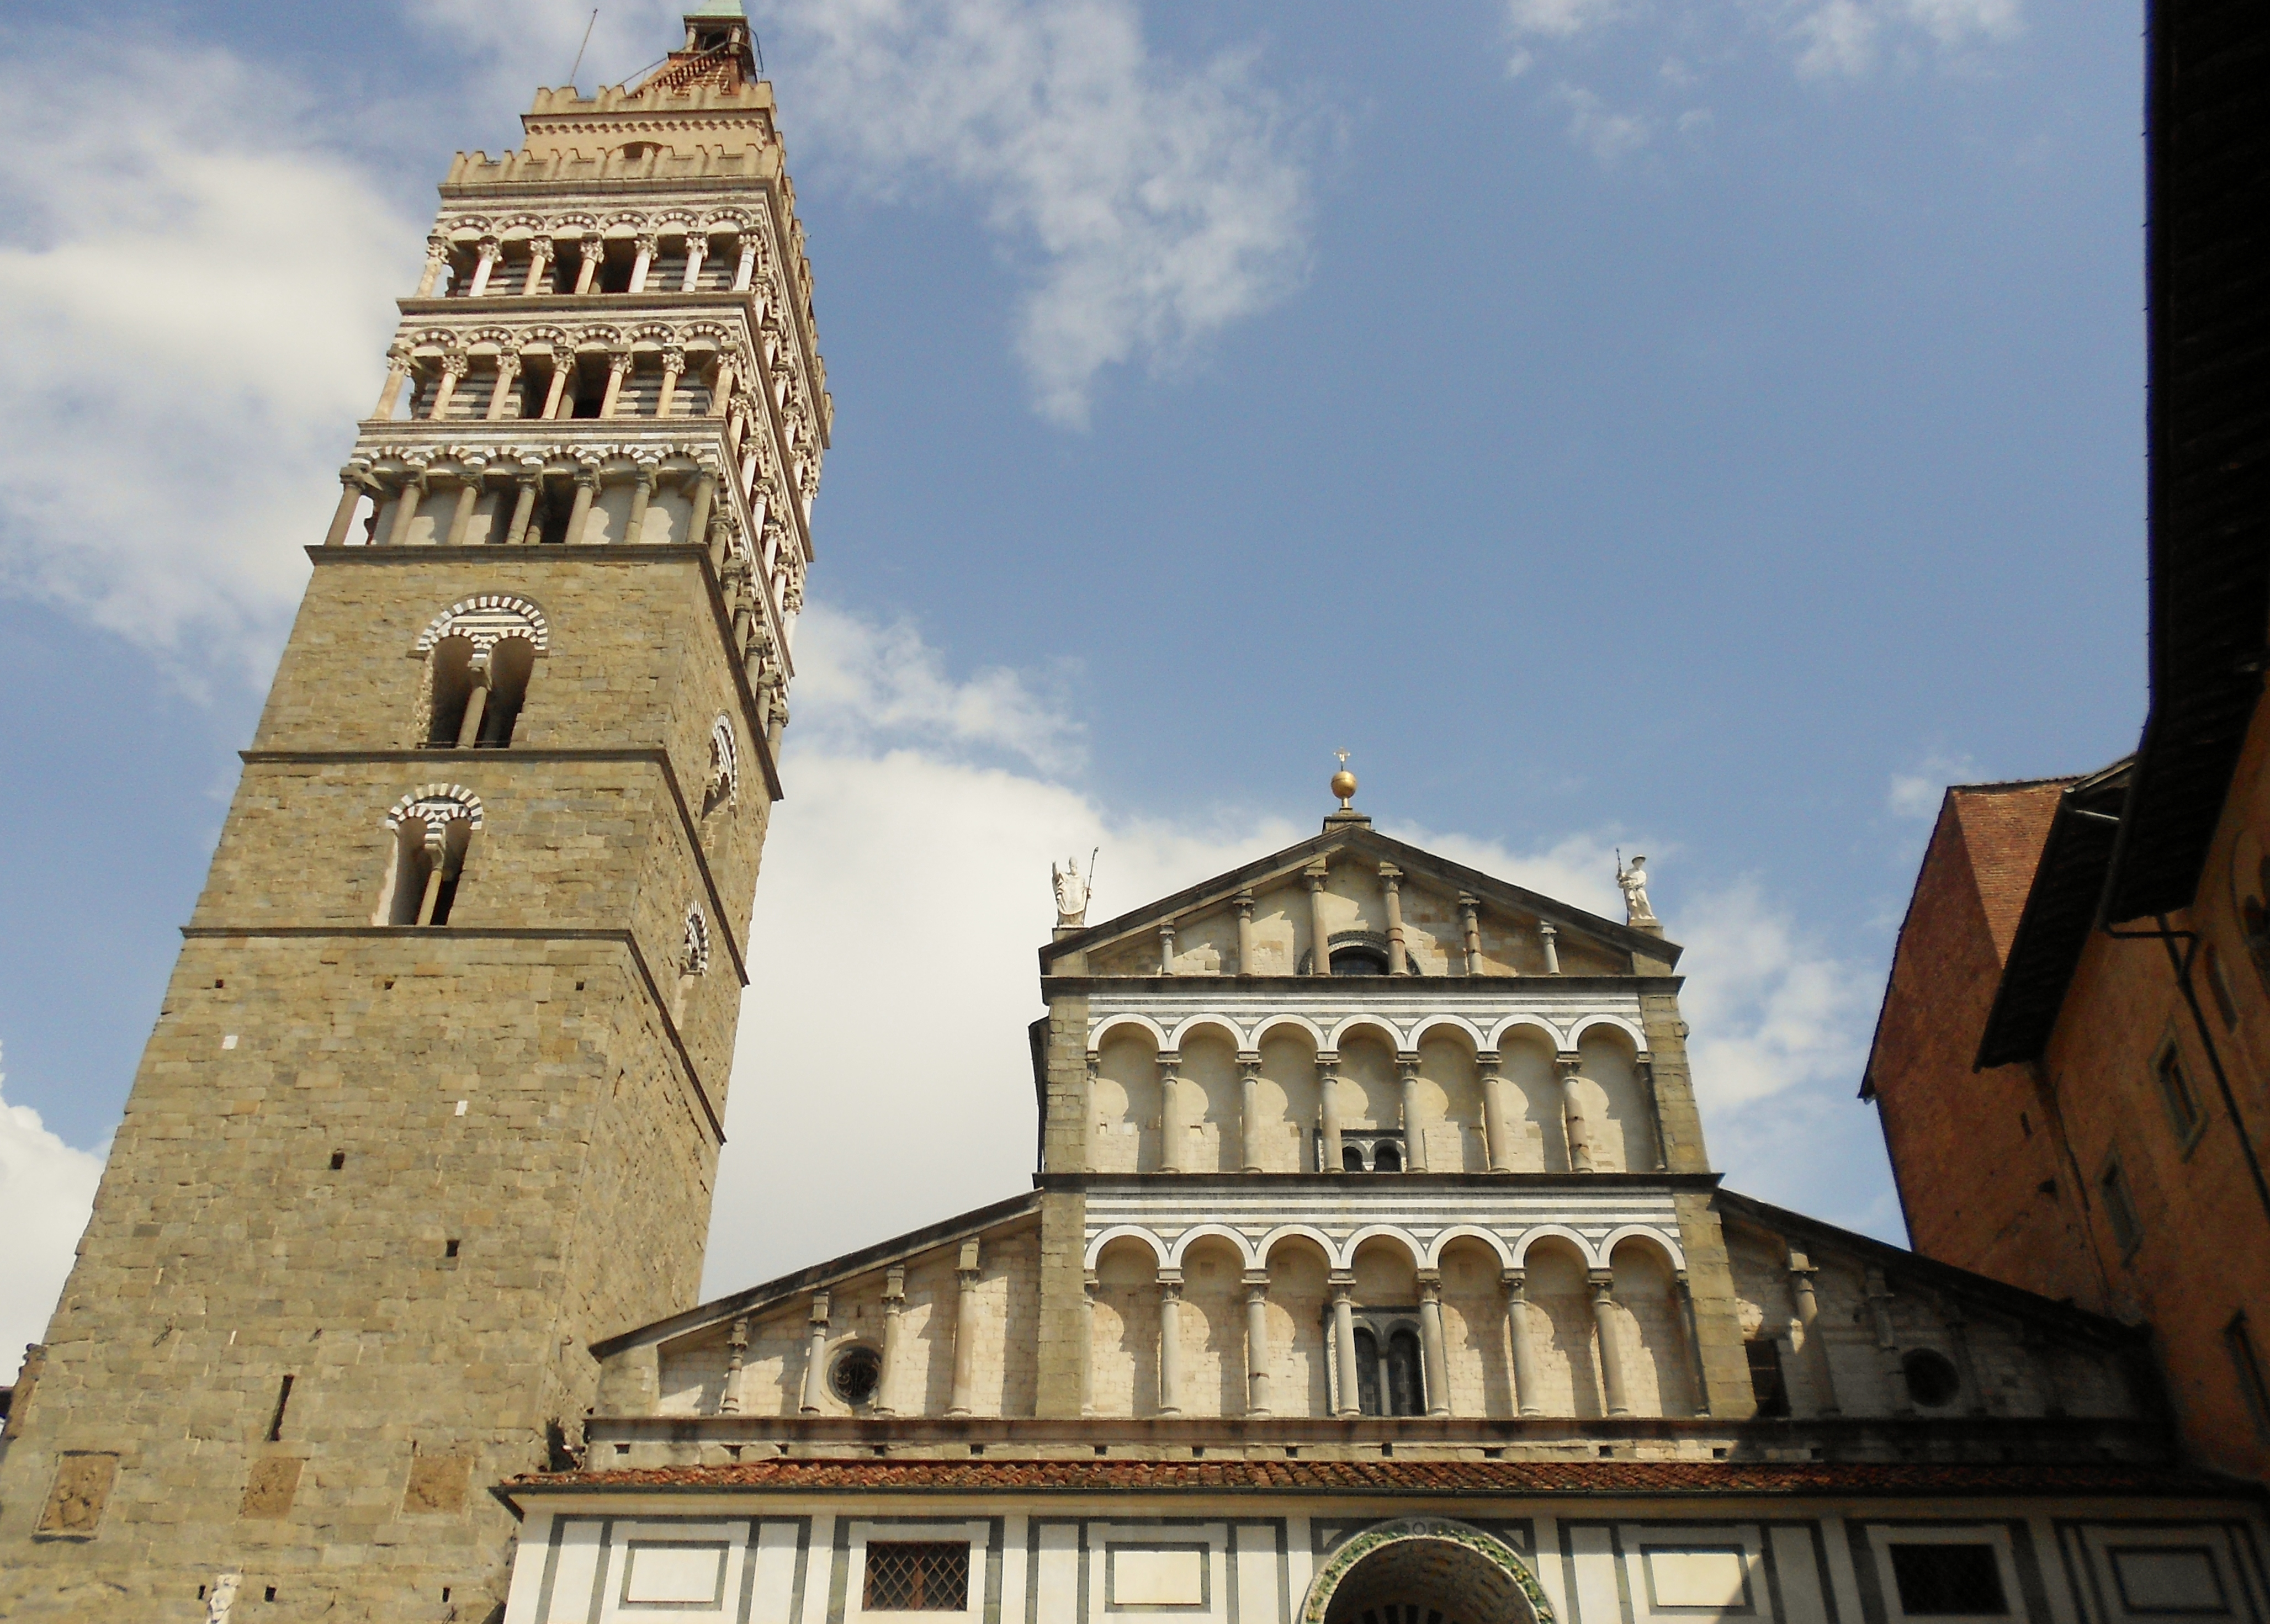 Historical buildings in the city of Pistoia